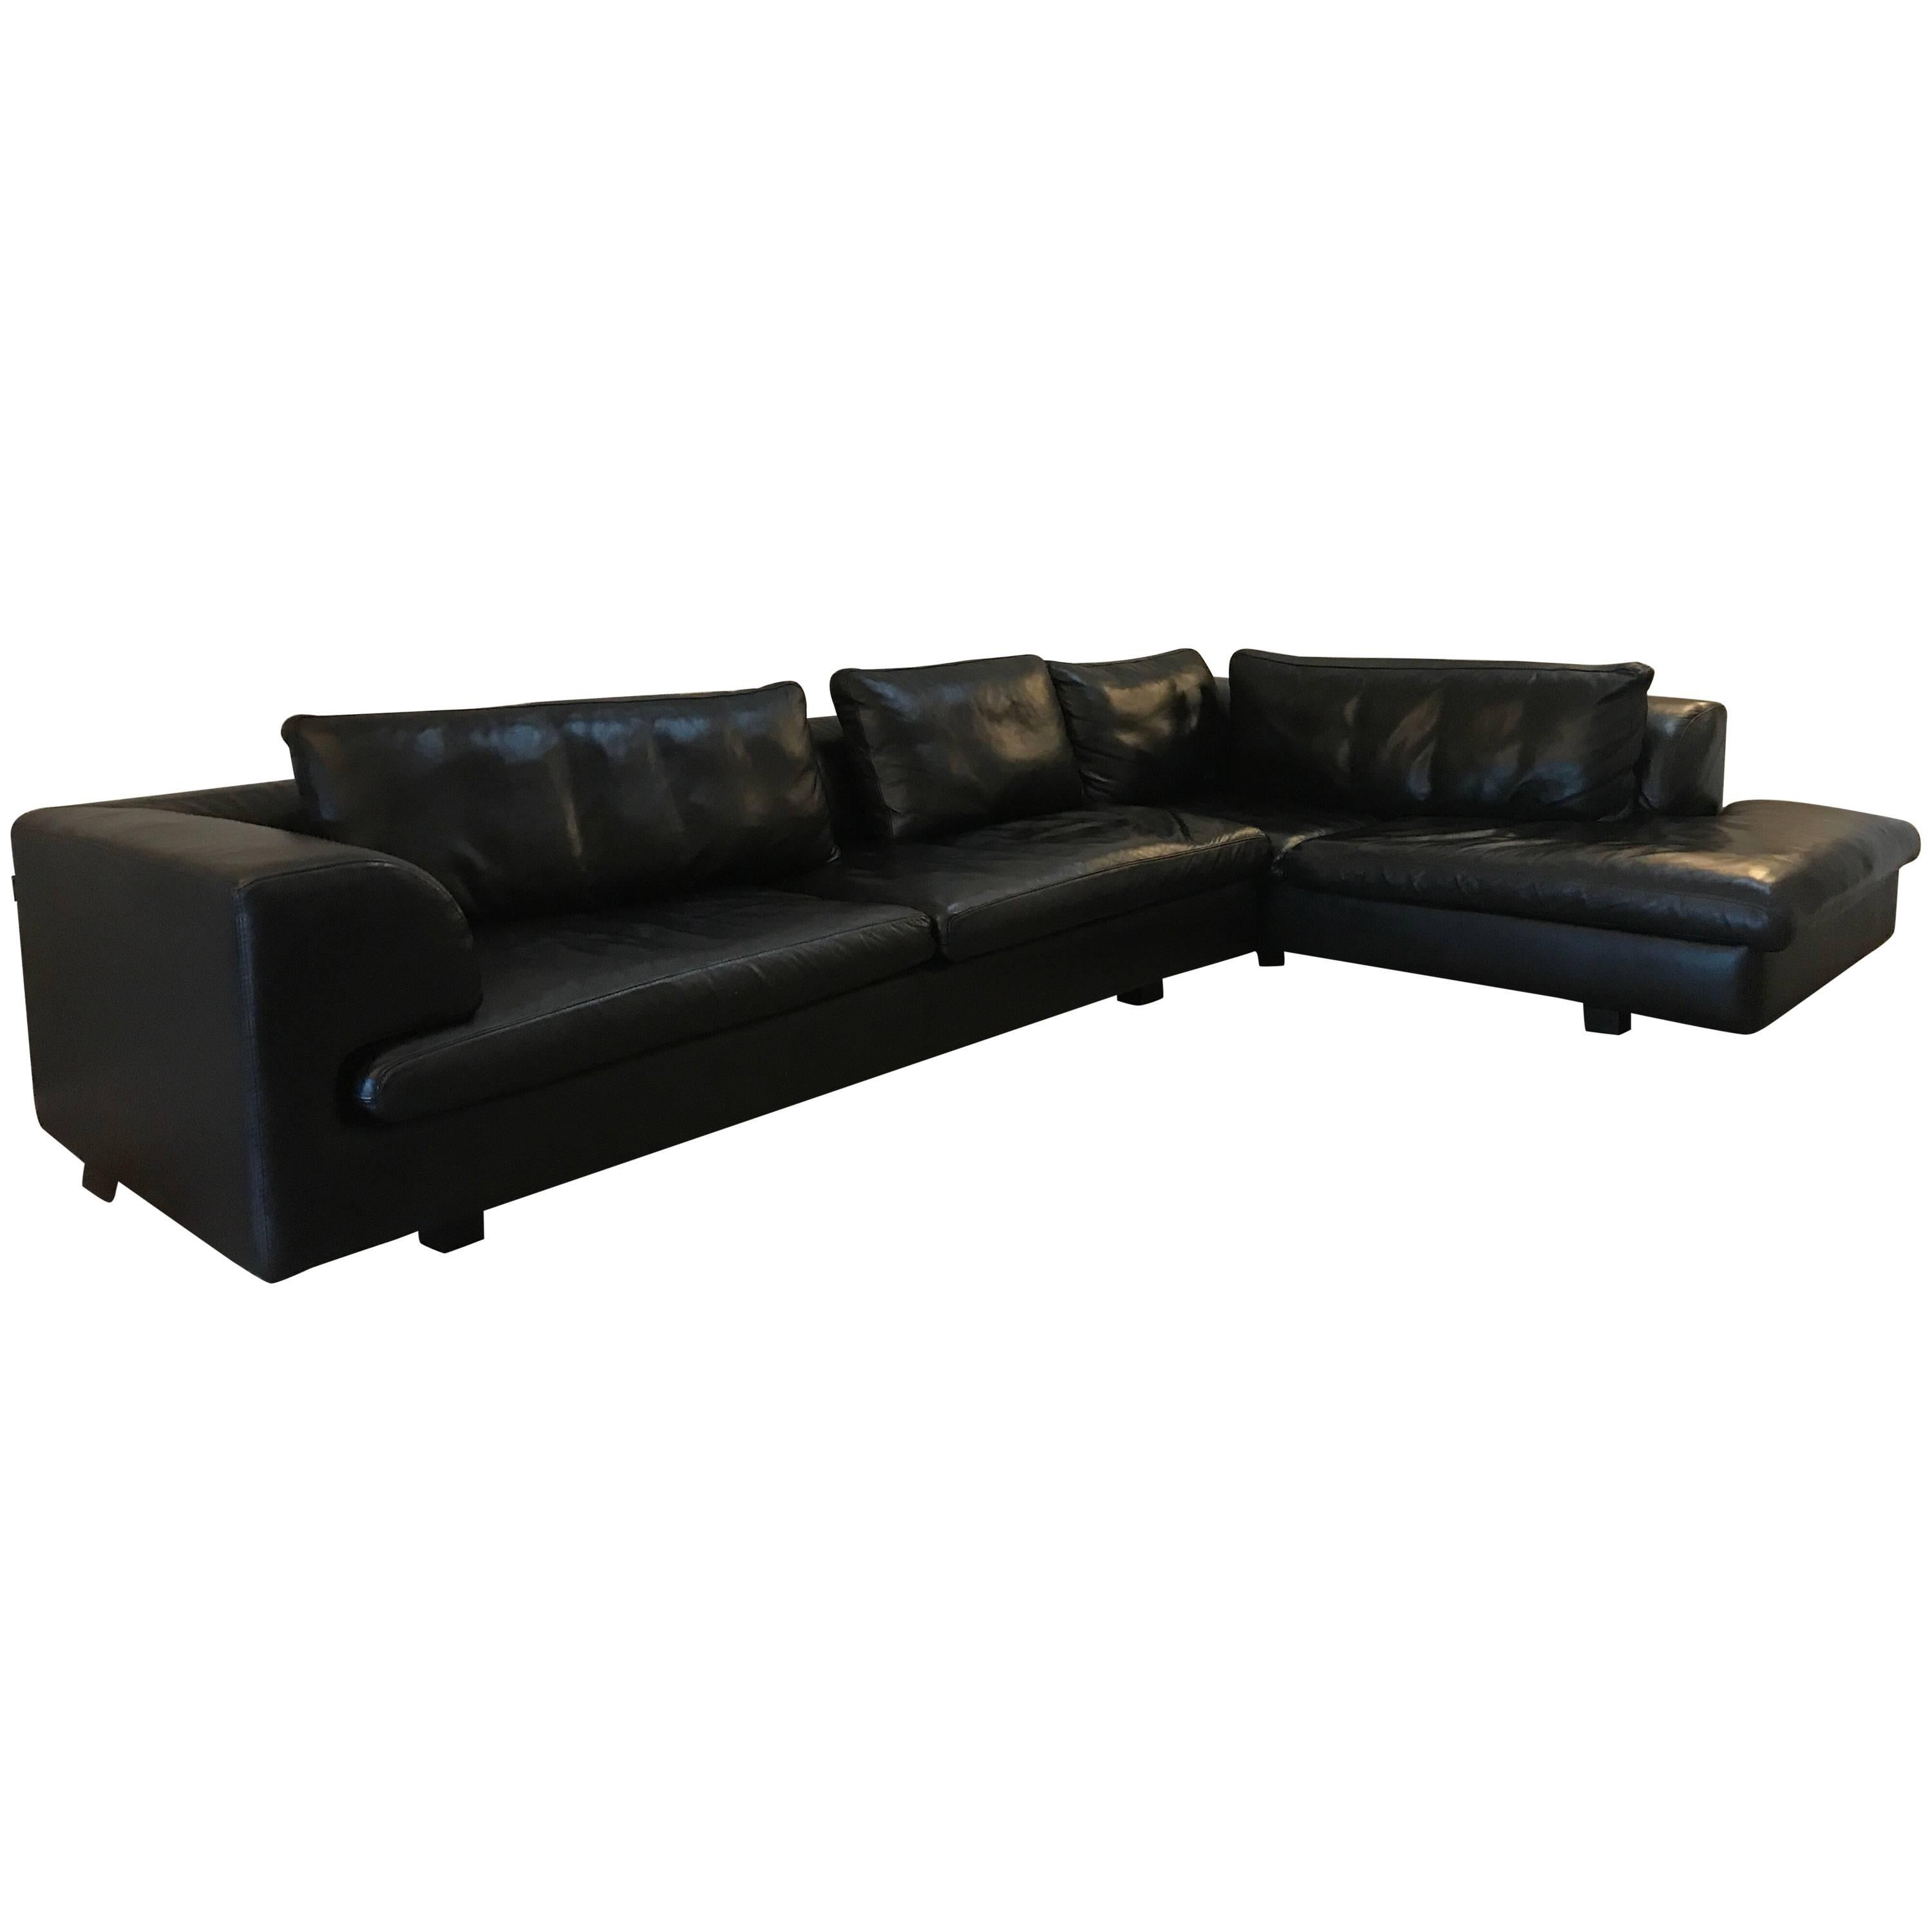 cheap black leather sectional sofas condo sofa bed toronto roche bobois for sale at 1stdibs